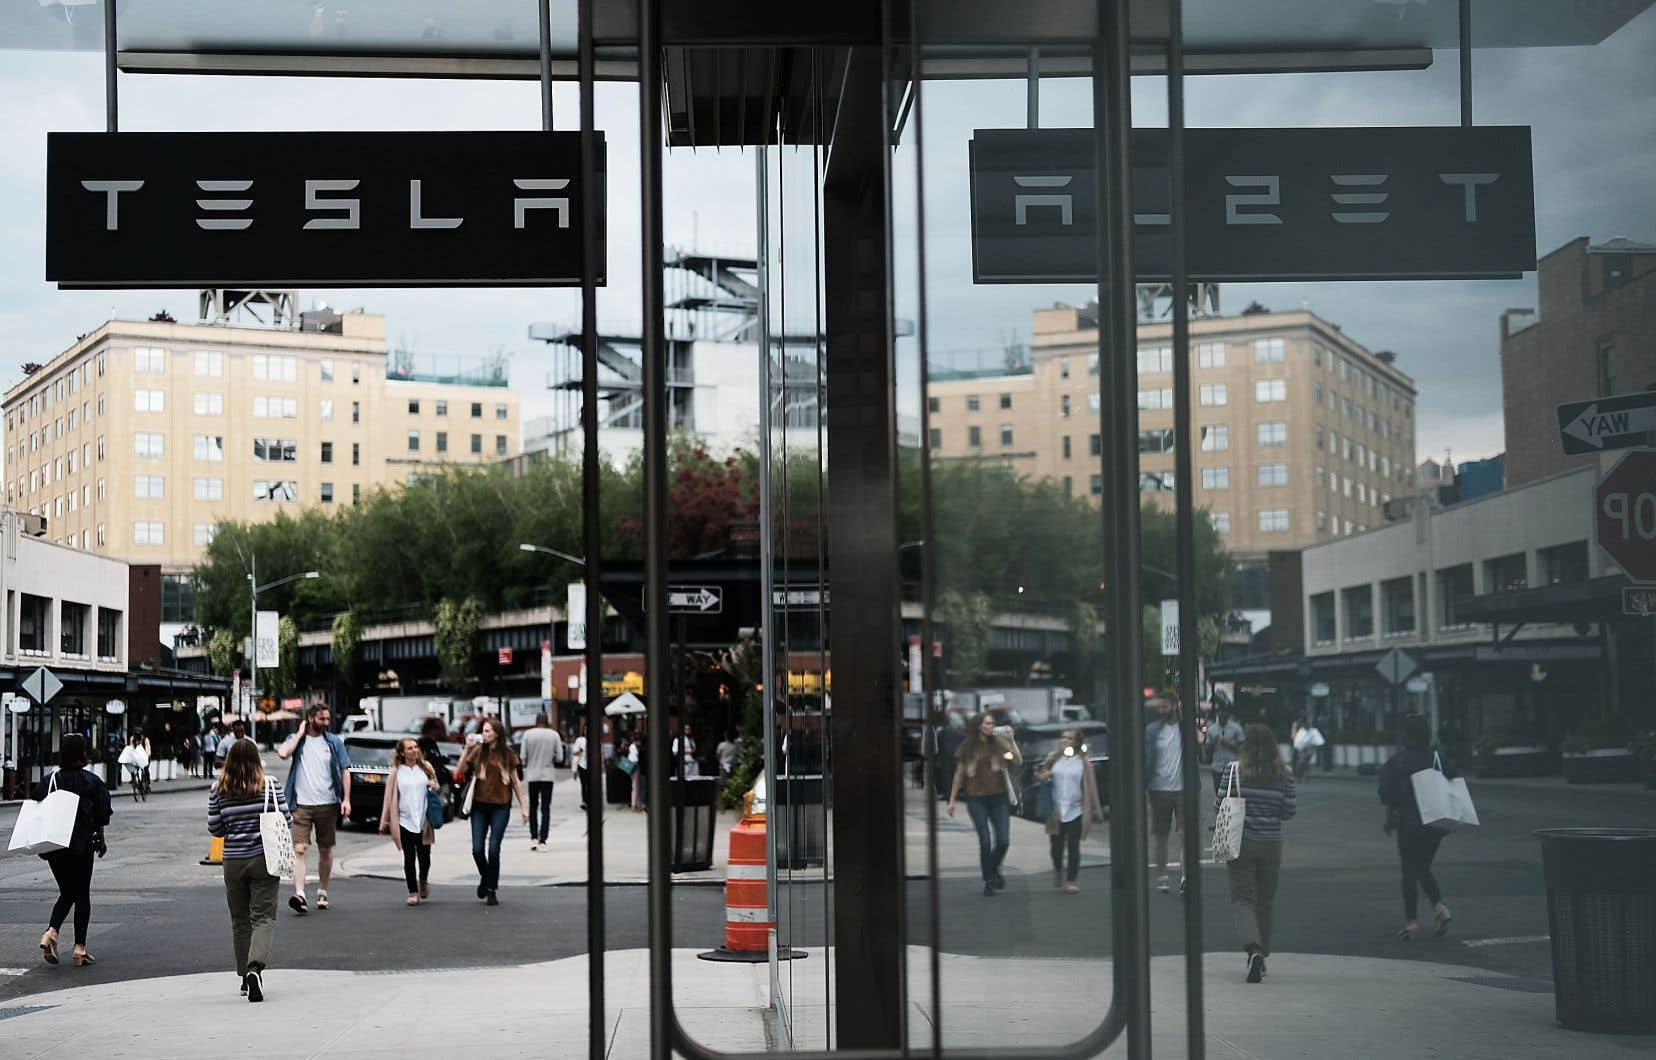 Un concessionnaire Tesla dans le quartier de Meatpacking à Manhattan, à New York, le 6 juin 2018